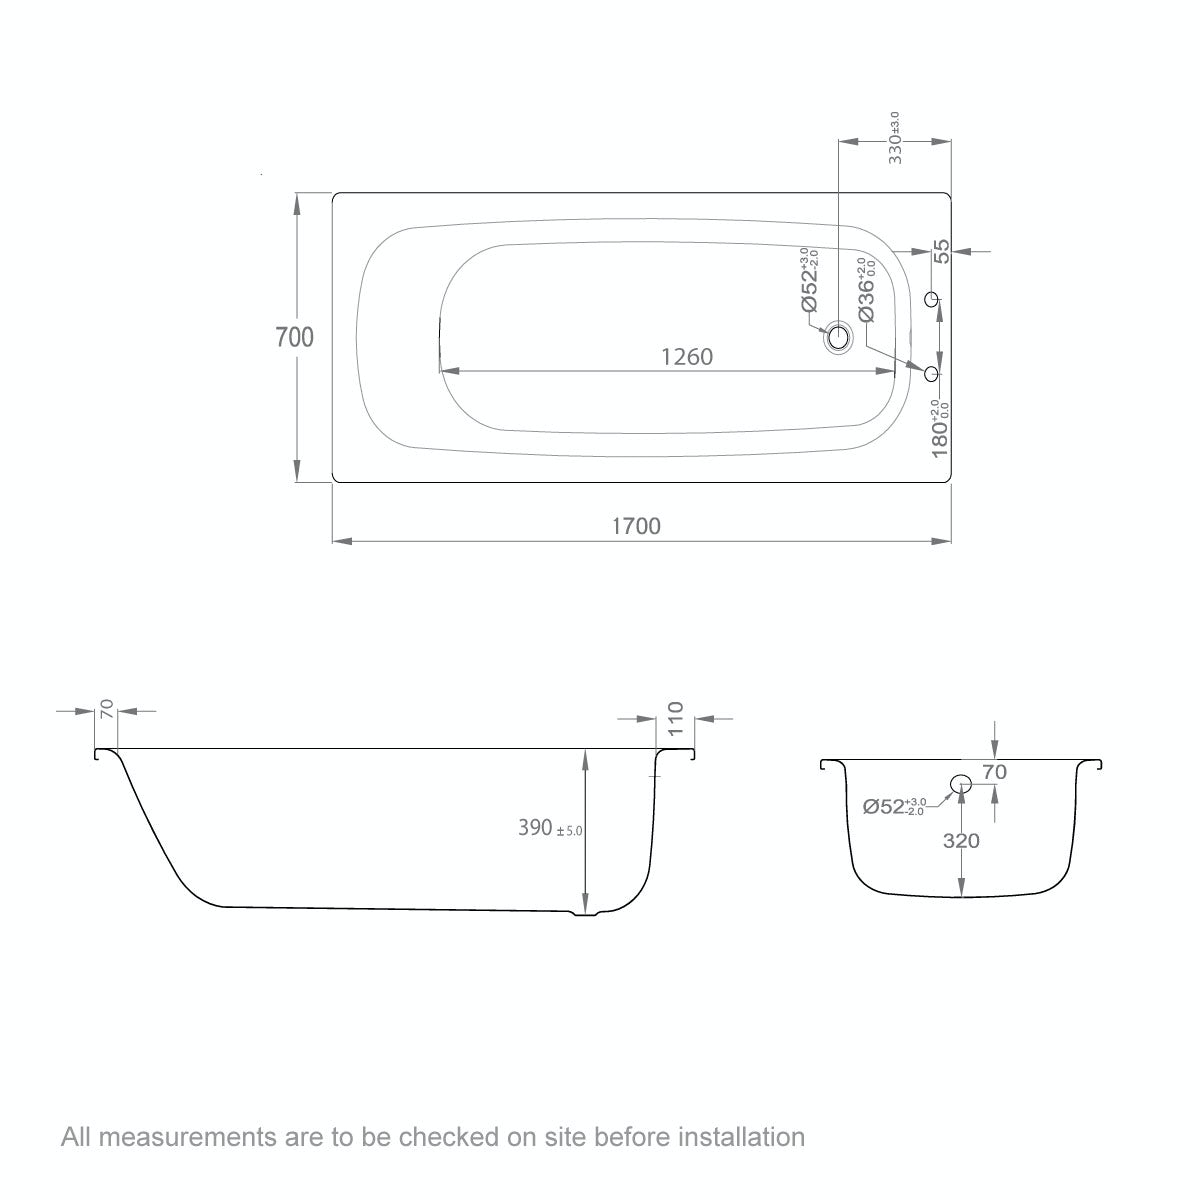 Dimensions for Clarity Steel bath with handle grips 1700 x 700